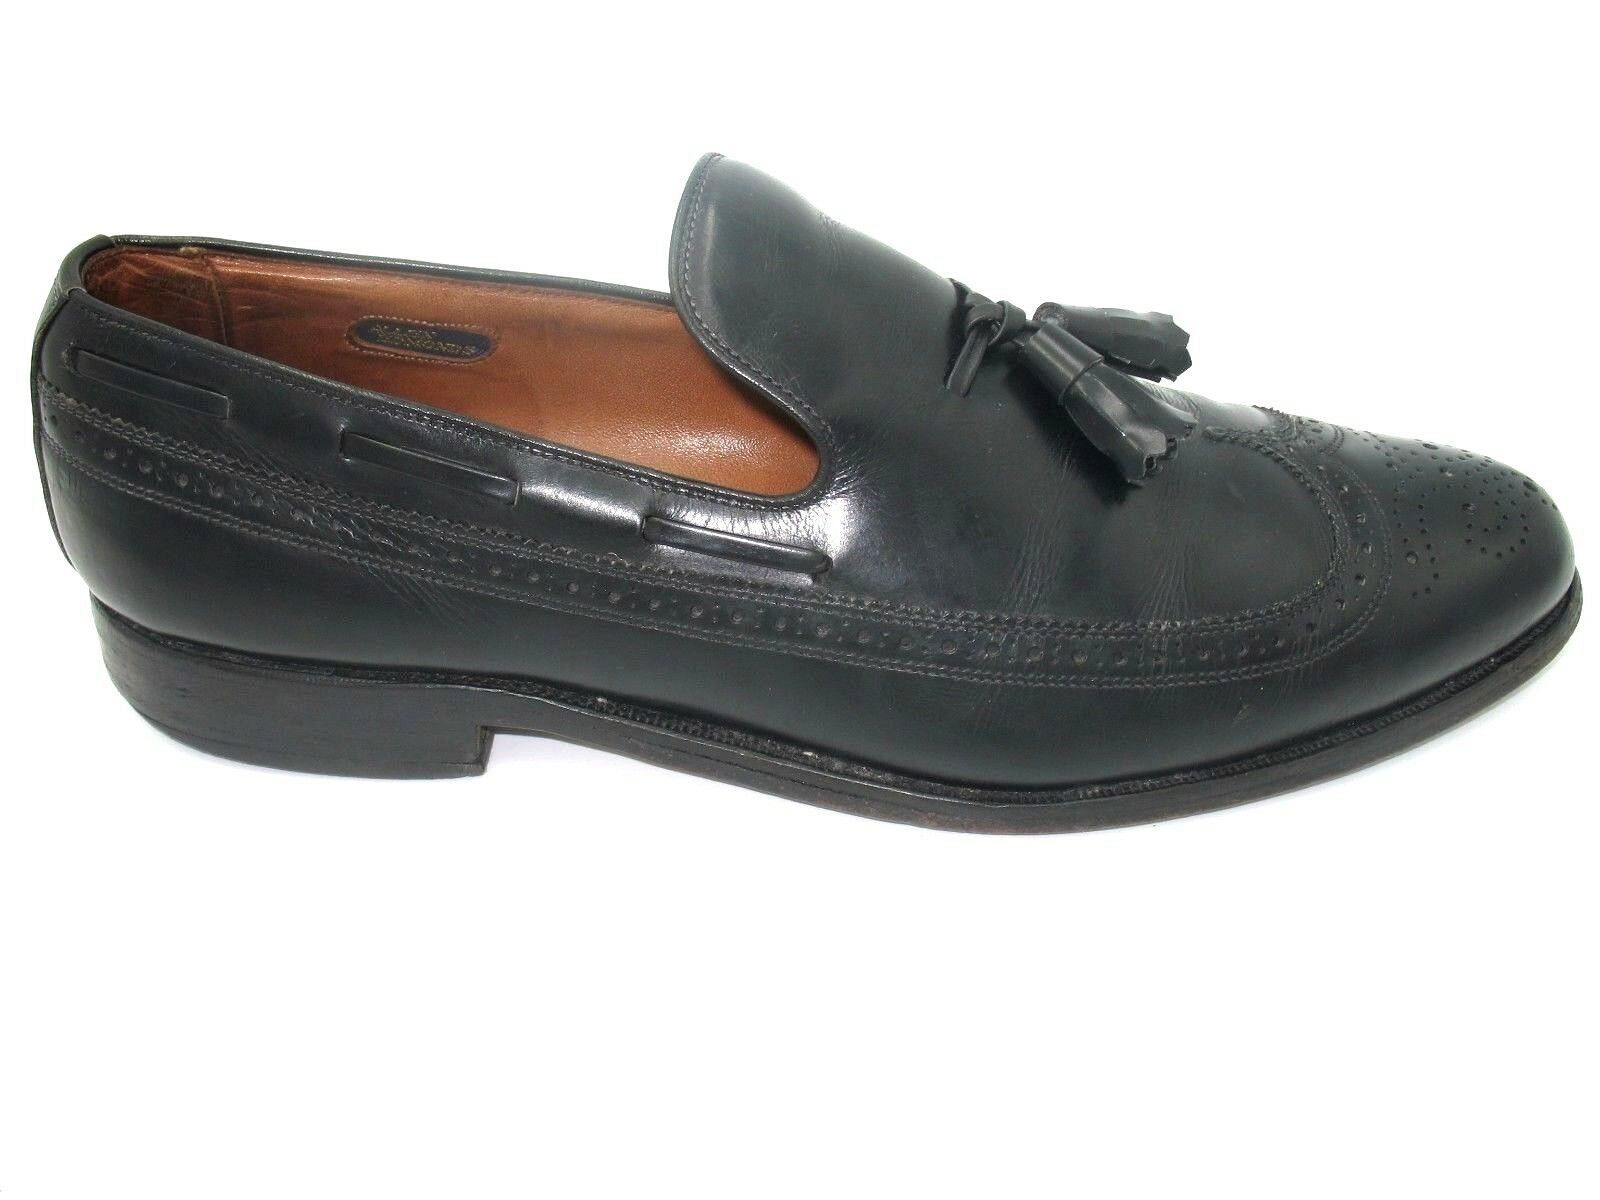 Allen Edmonds Berwick Black Leather Wingtip Tassel Loafer Dress shoes Mens 11 N